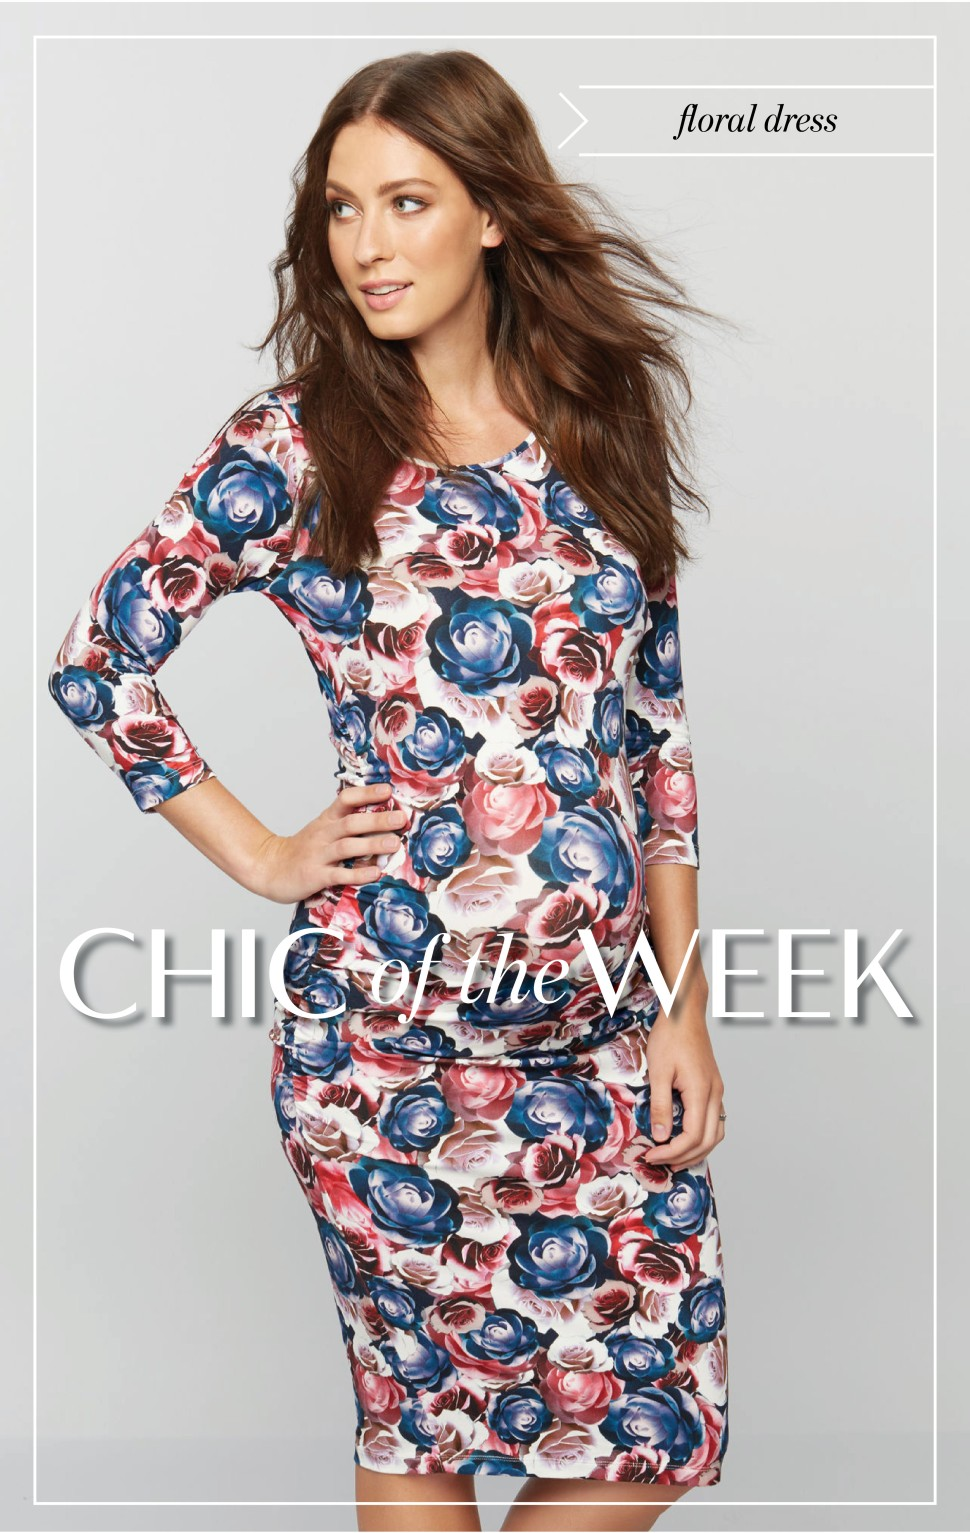 APIP BLOG ChicWeek Floral IO DressPost